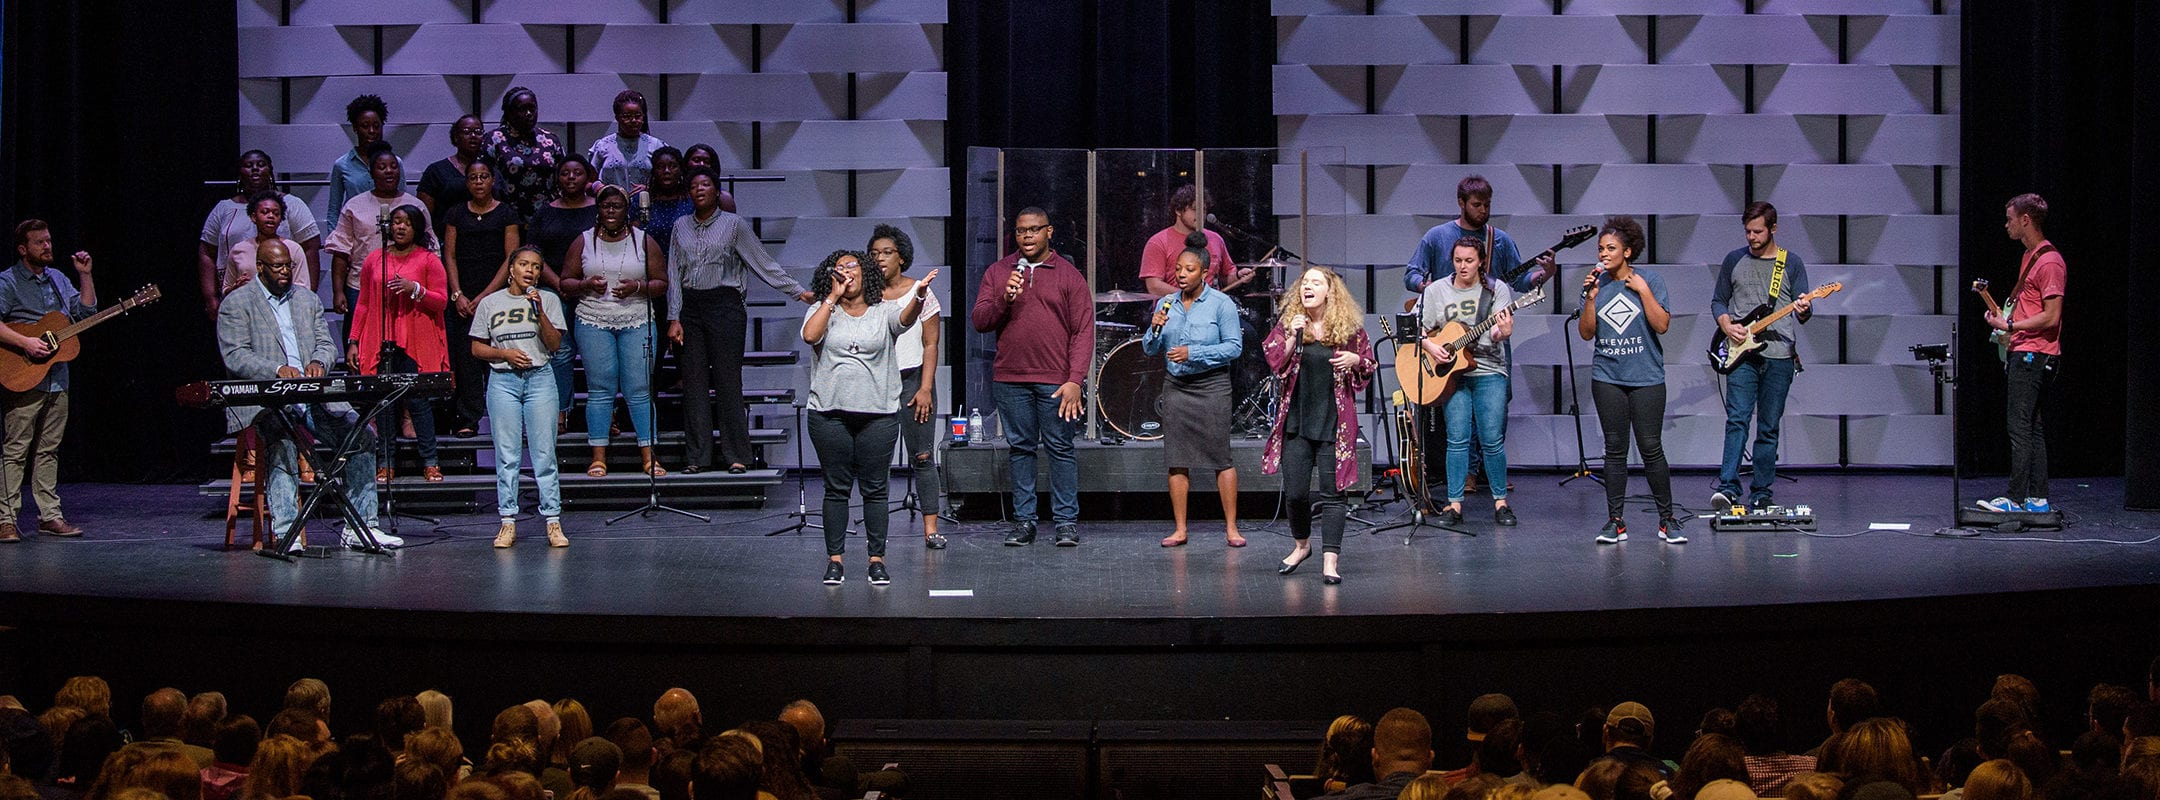 A full stage of singers and musicians during CSU's gospel chapel.